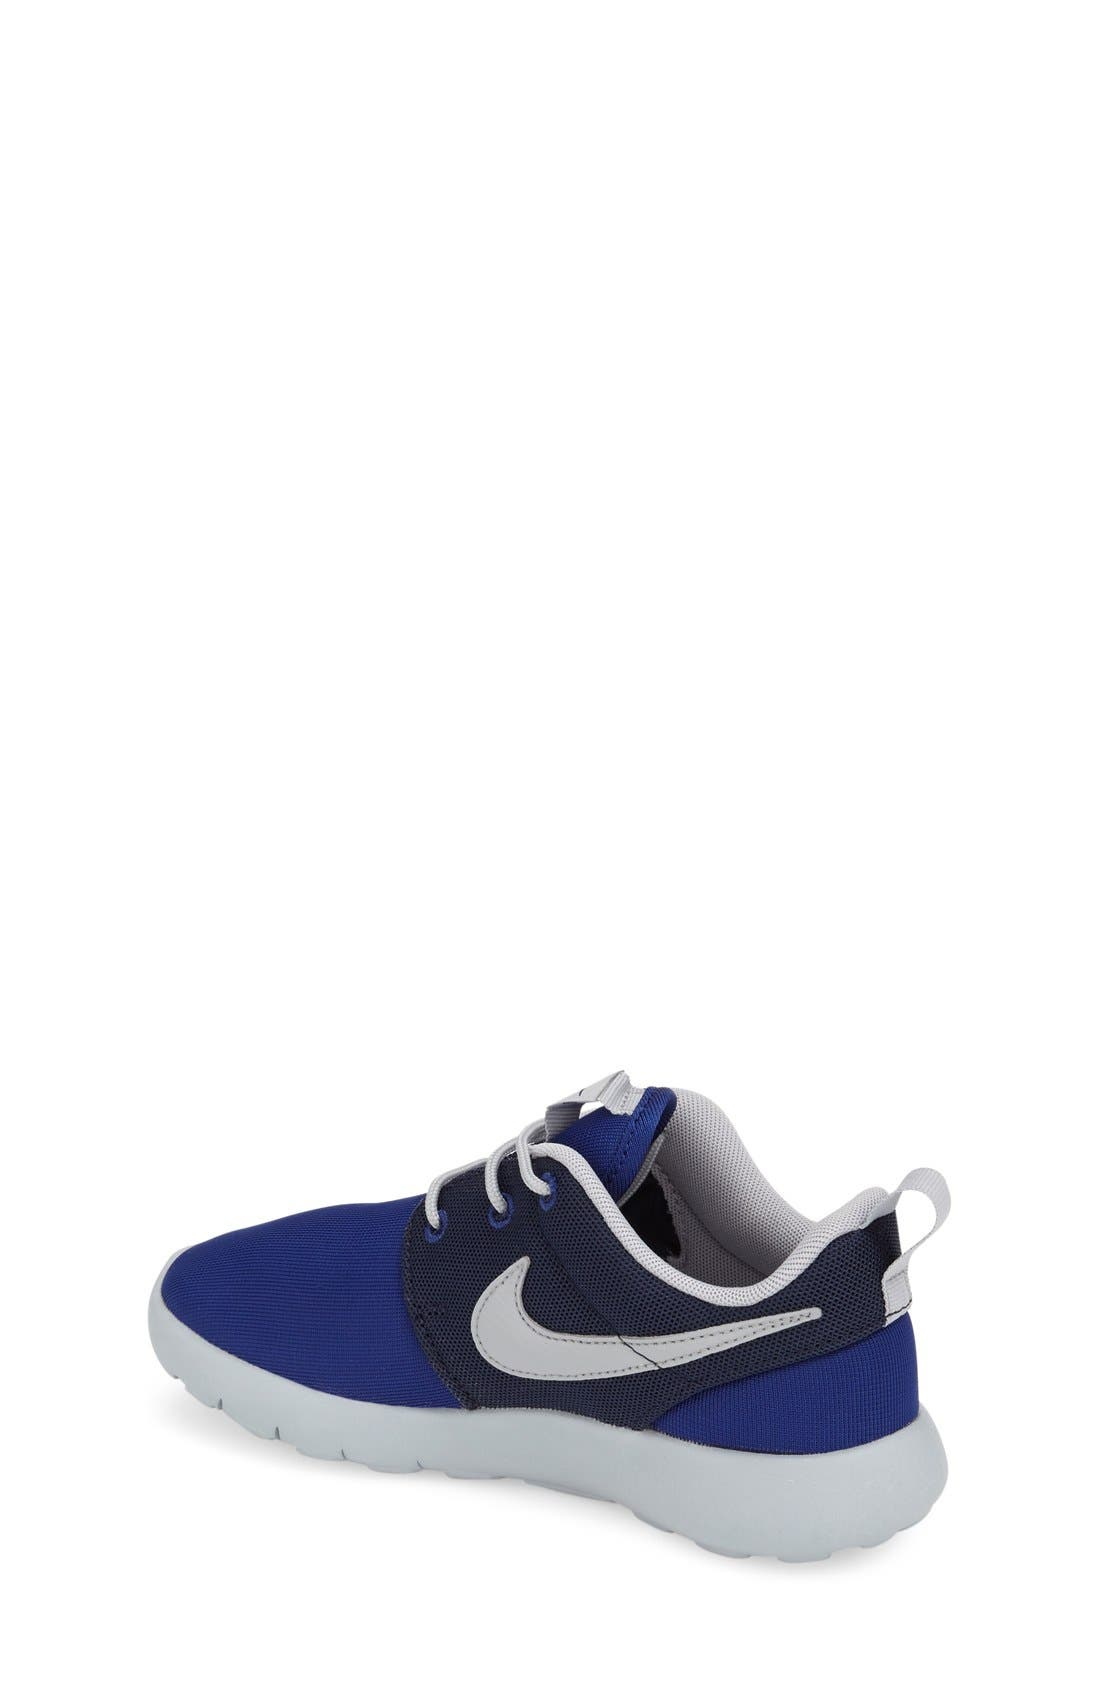 Roshe Run Sneaker,                             Alternate thumbnail 33, color,